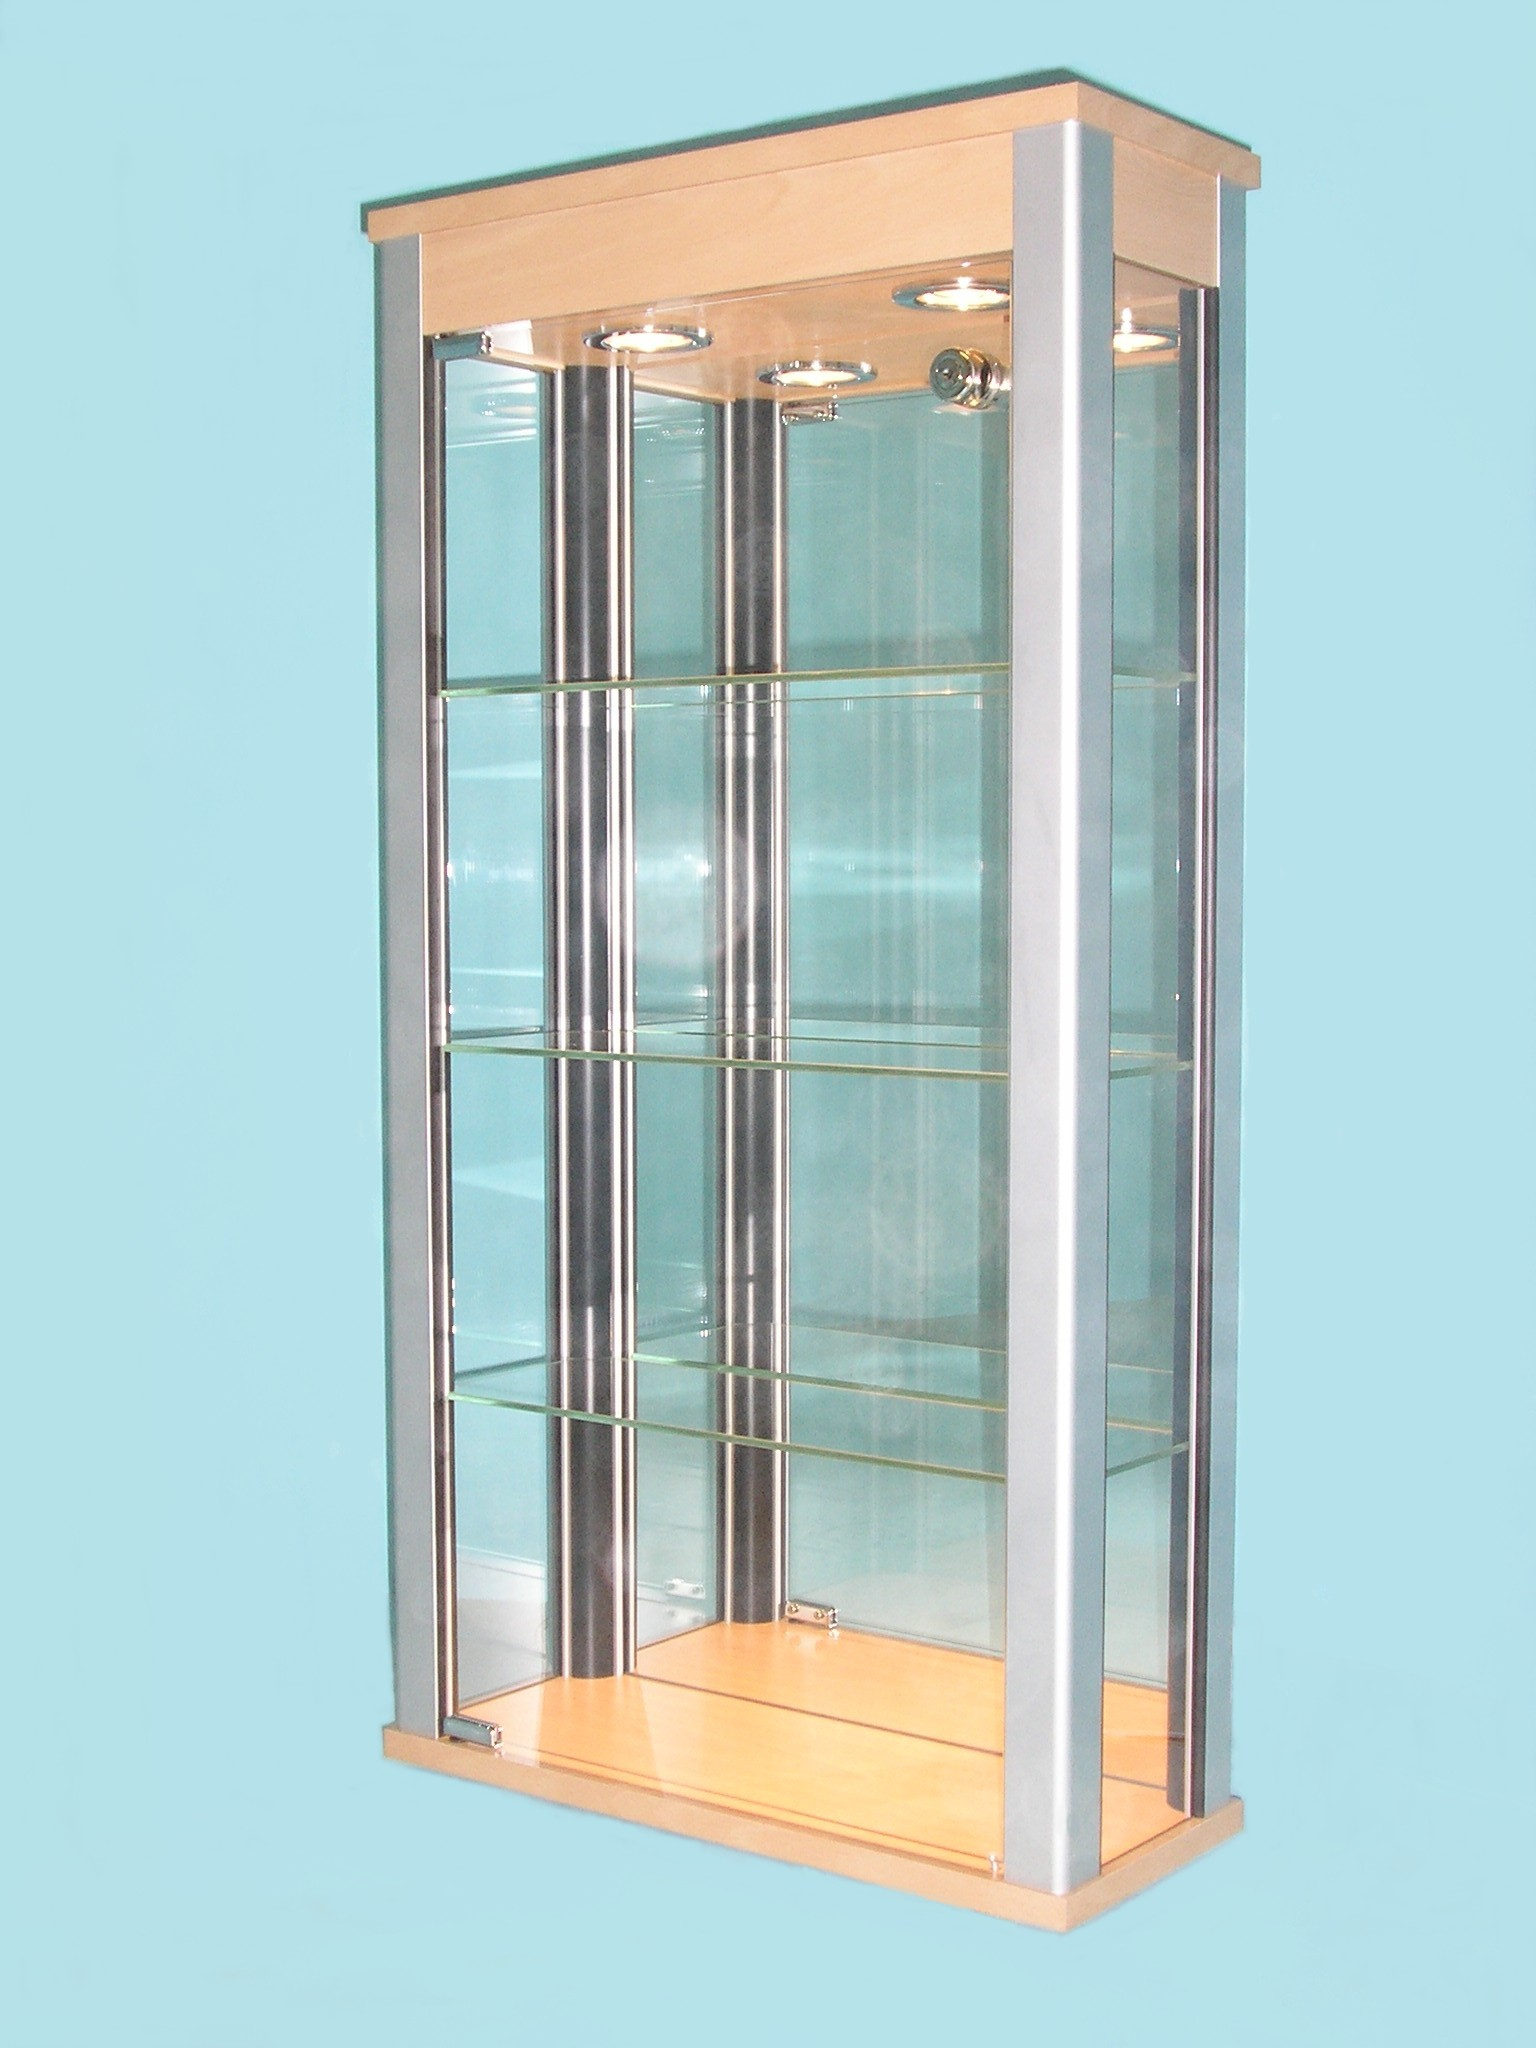 #AB6620 Beech Glass Display Cabinets For The Home · Designex Cabinets with 1536x2048 px of Best Glass Display Cabinet On Wall 20481536 image @ avoidforclosure.info